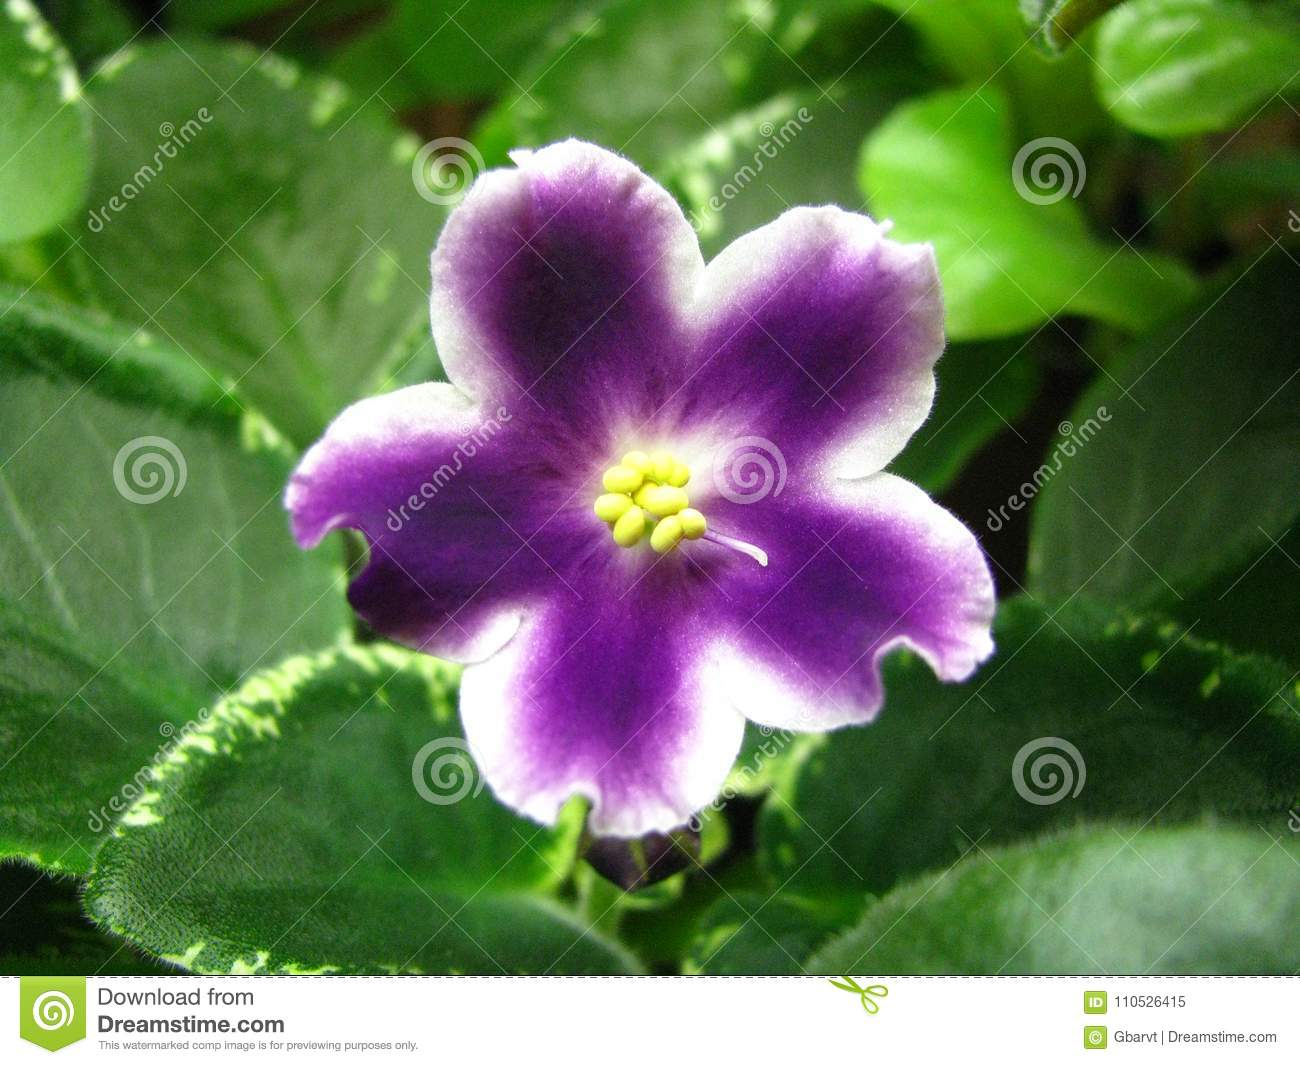 White Star Flower With Wavy Edges And Purple Rays From The Center On ...